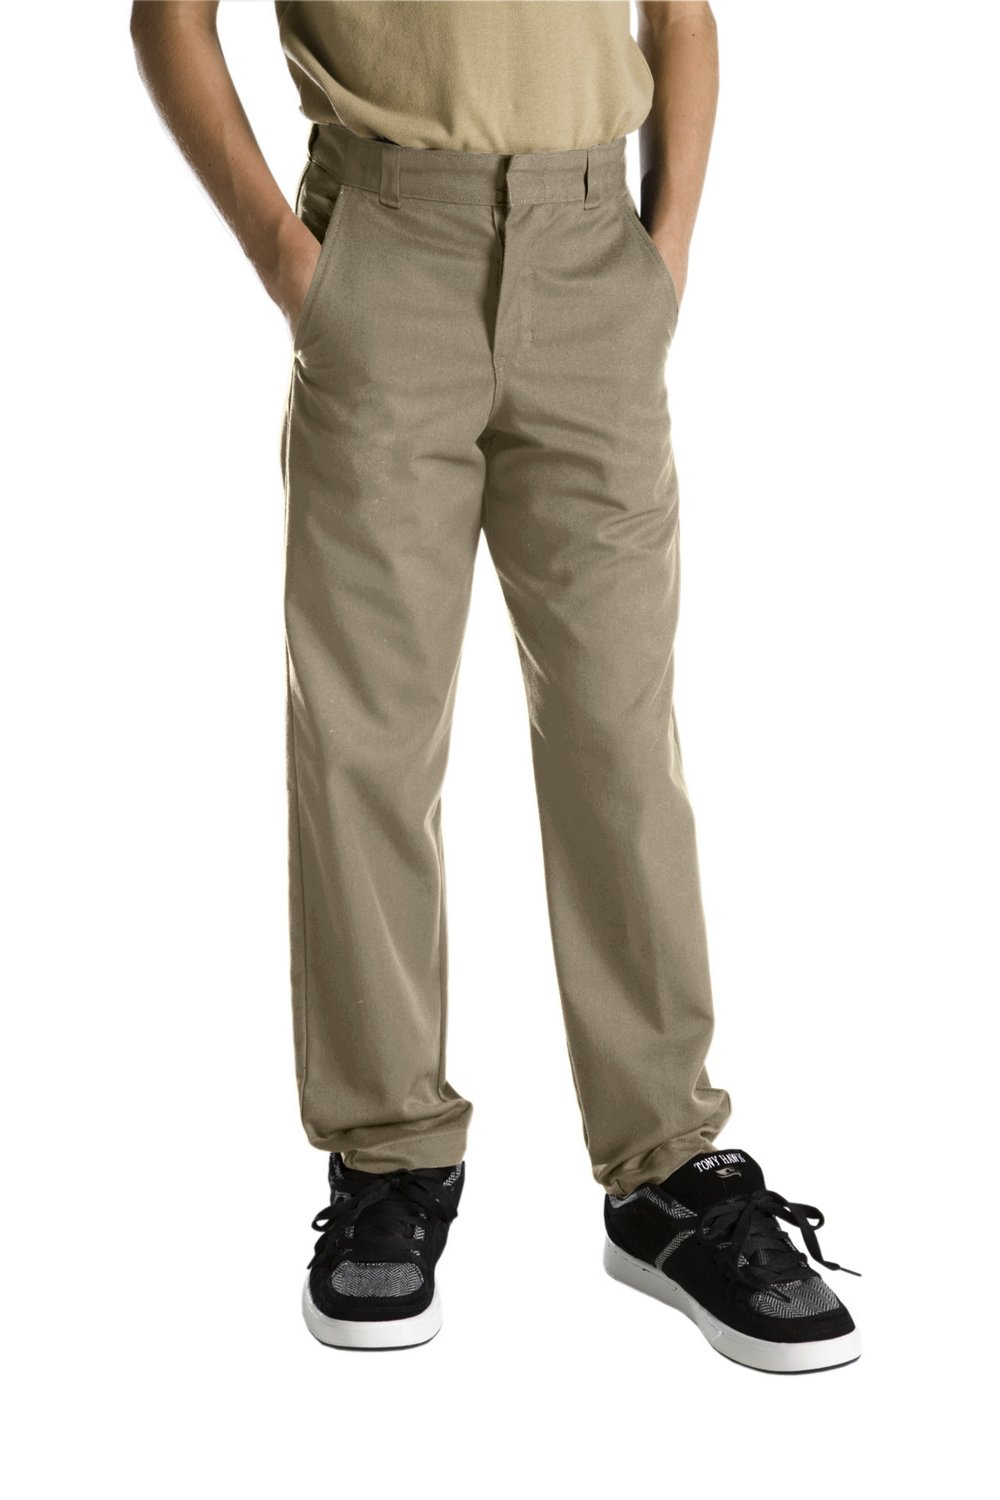 School Uniforms Kids For Boys And Girls Academy Austin Flats Laken Beige 38 Display Product Reviews Dickies Classic Fit Straight Leg Flat Front Uniform Pant